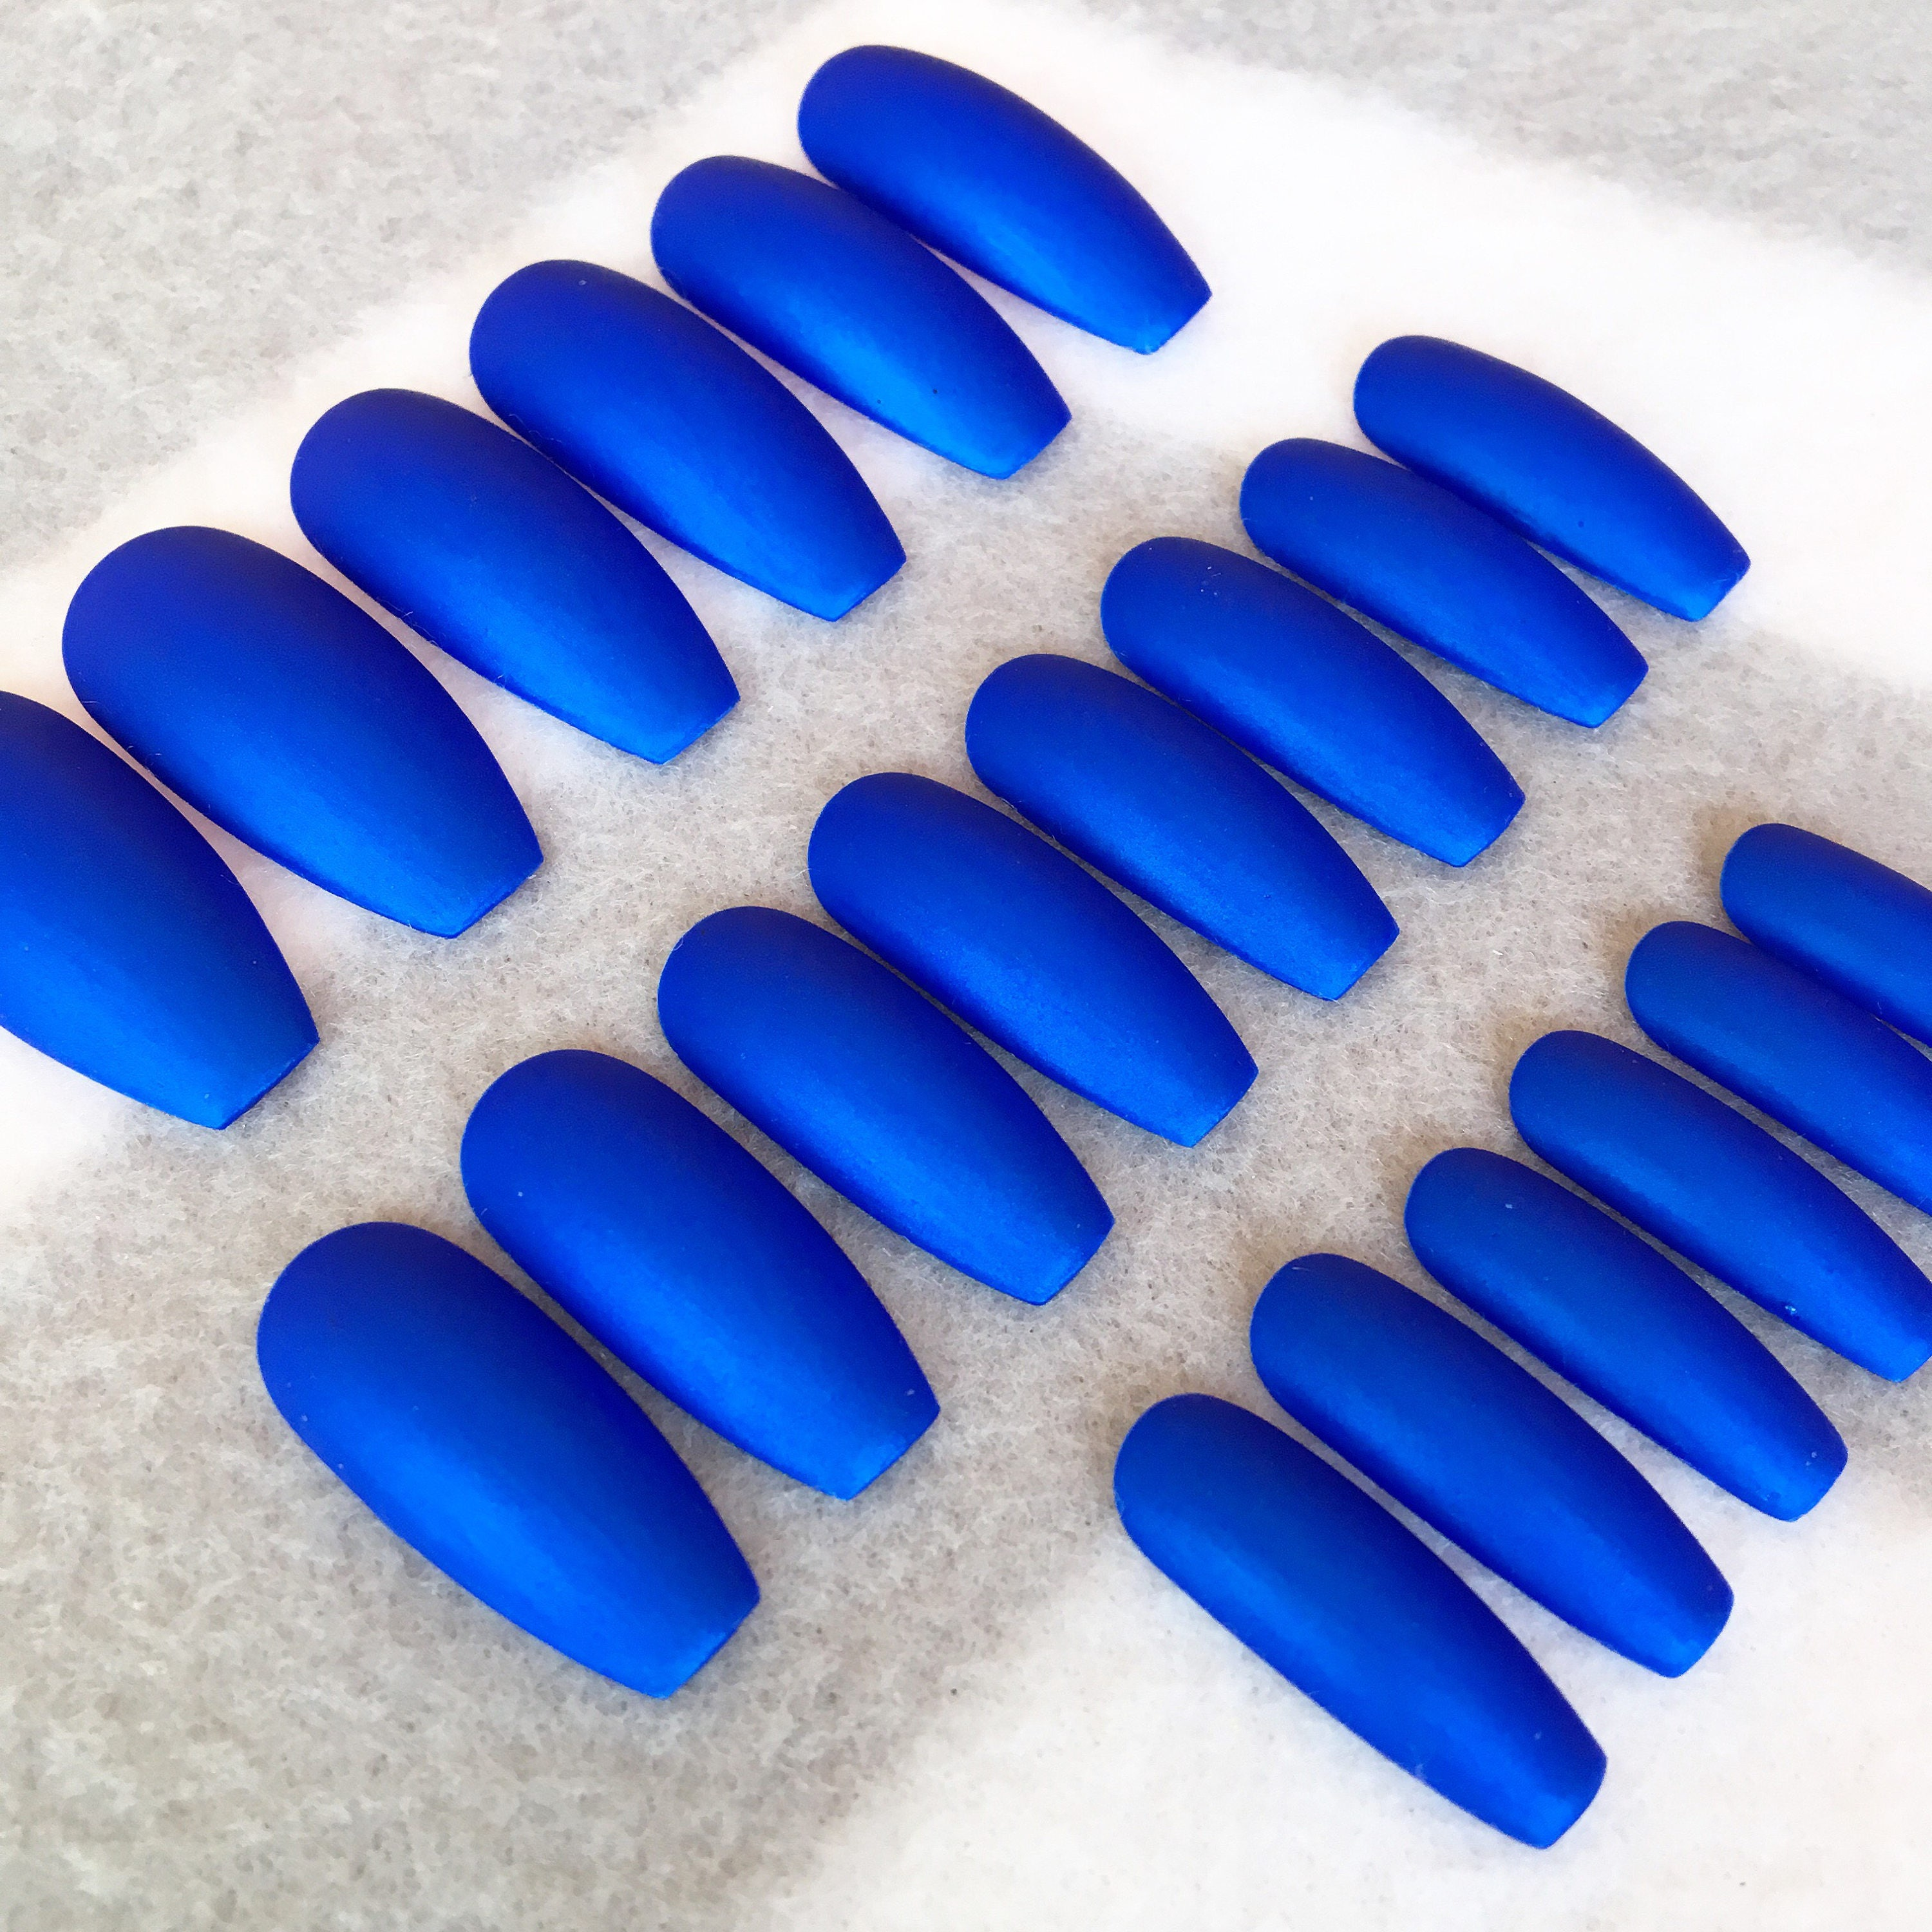 Blue Fake Nails * Faux Nails * Glue On Nails * Blue Nails * Ocean ...